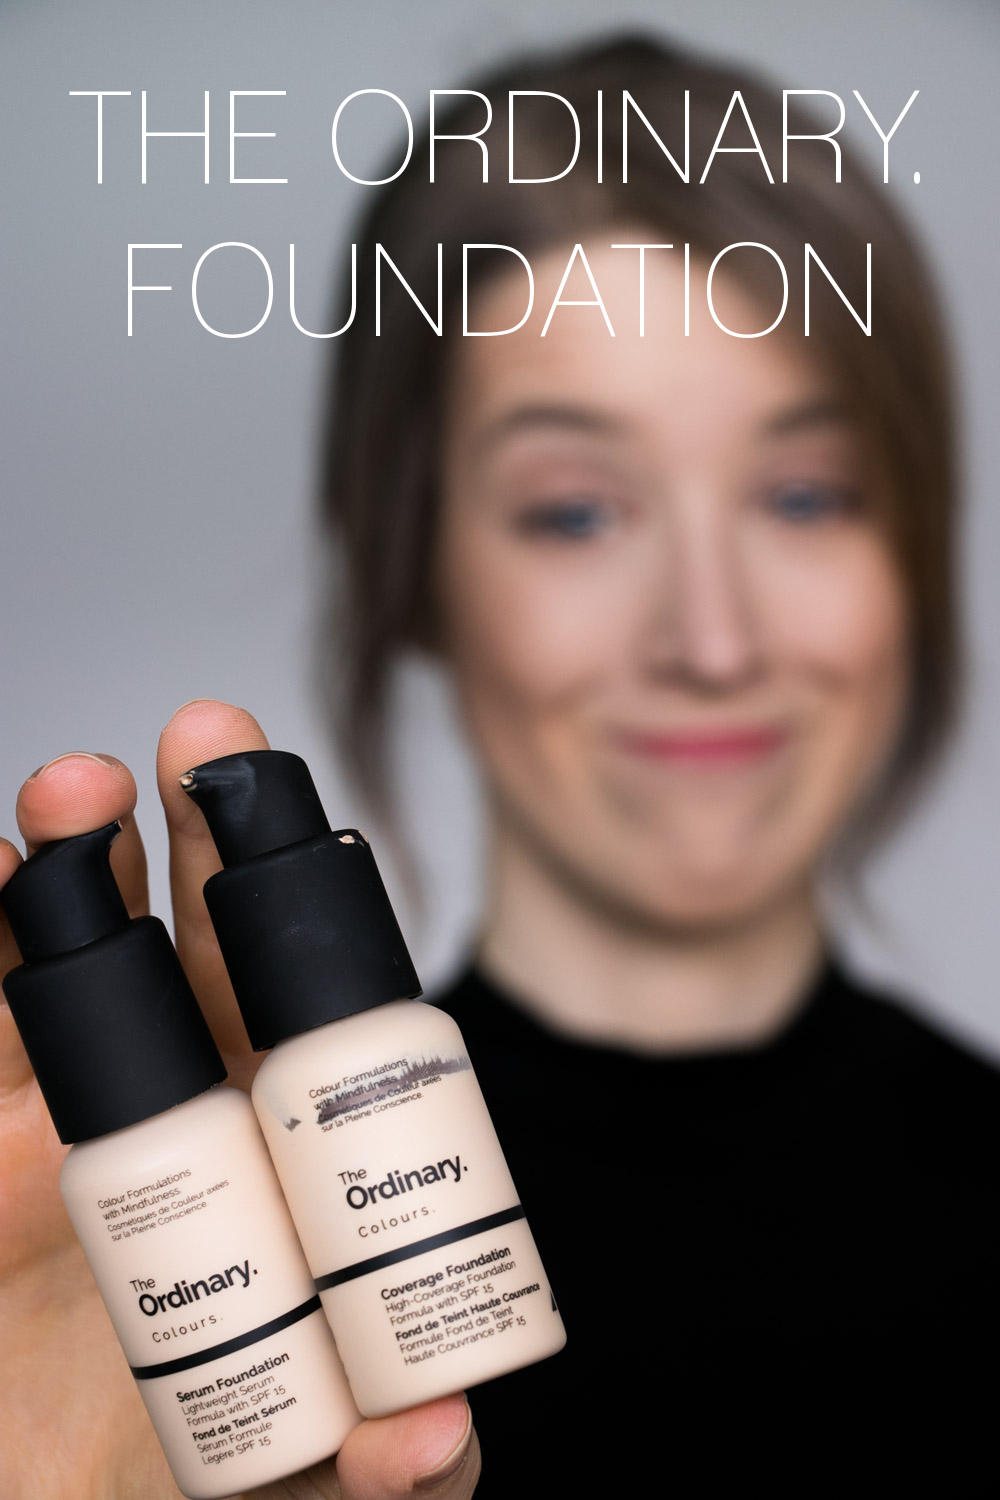 The Ordinary Foundations